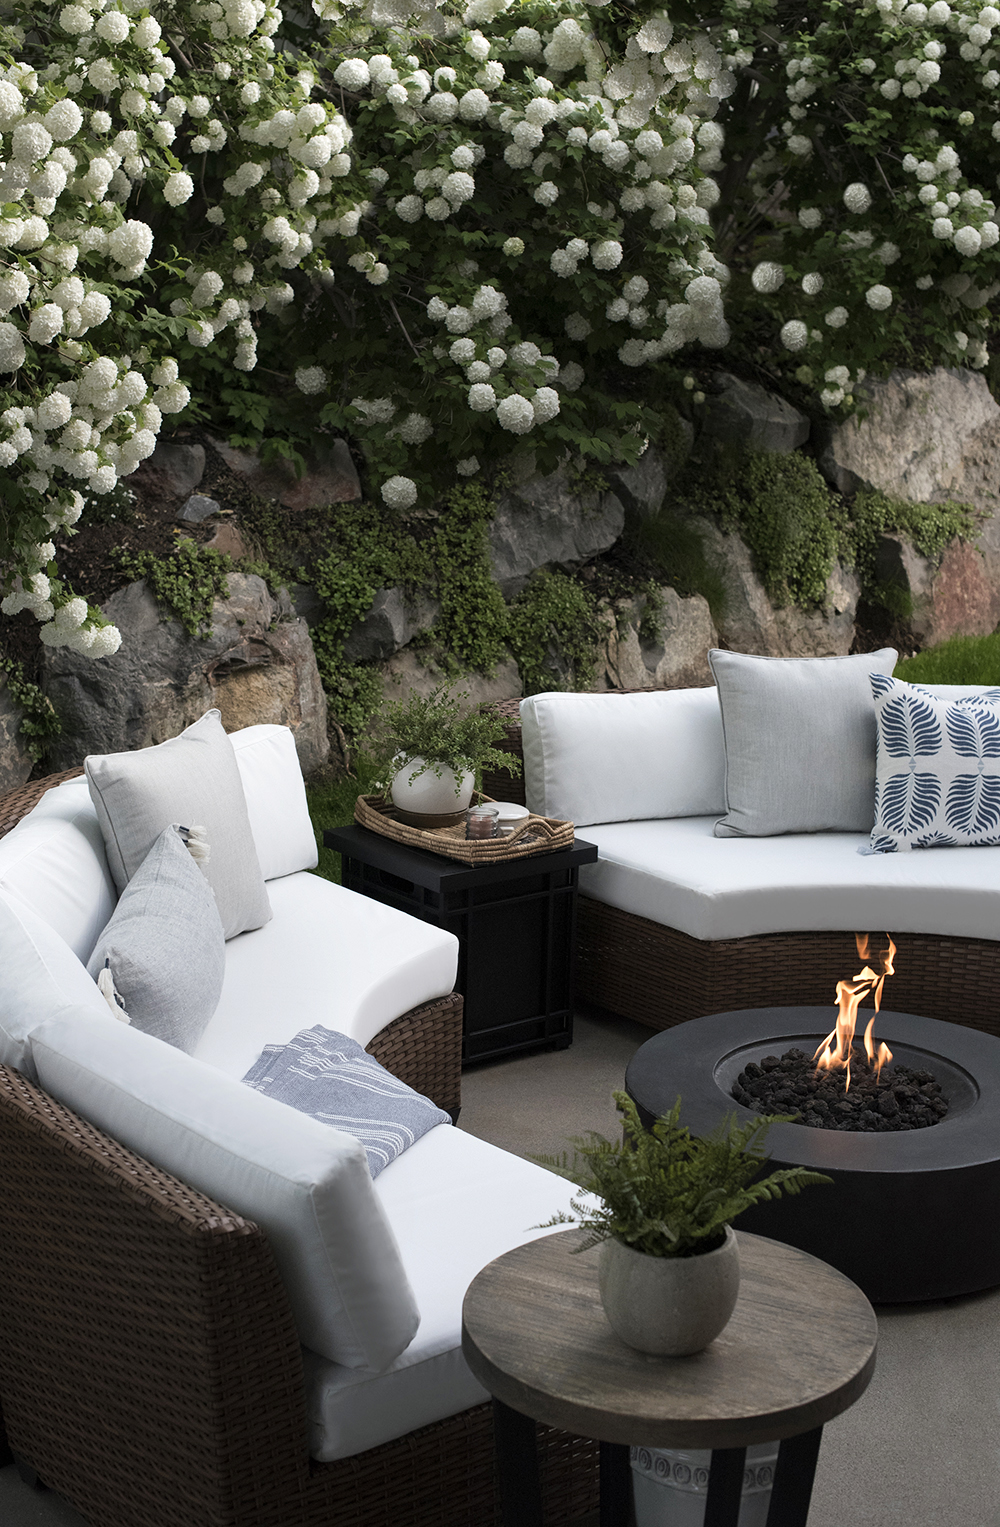 Outdoor Seating Area And Fire Pit Room For Tuesday